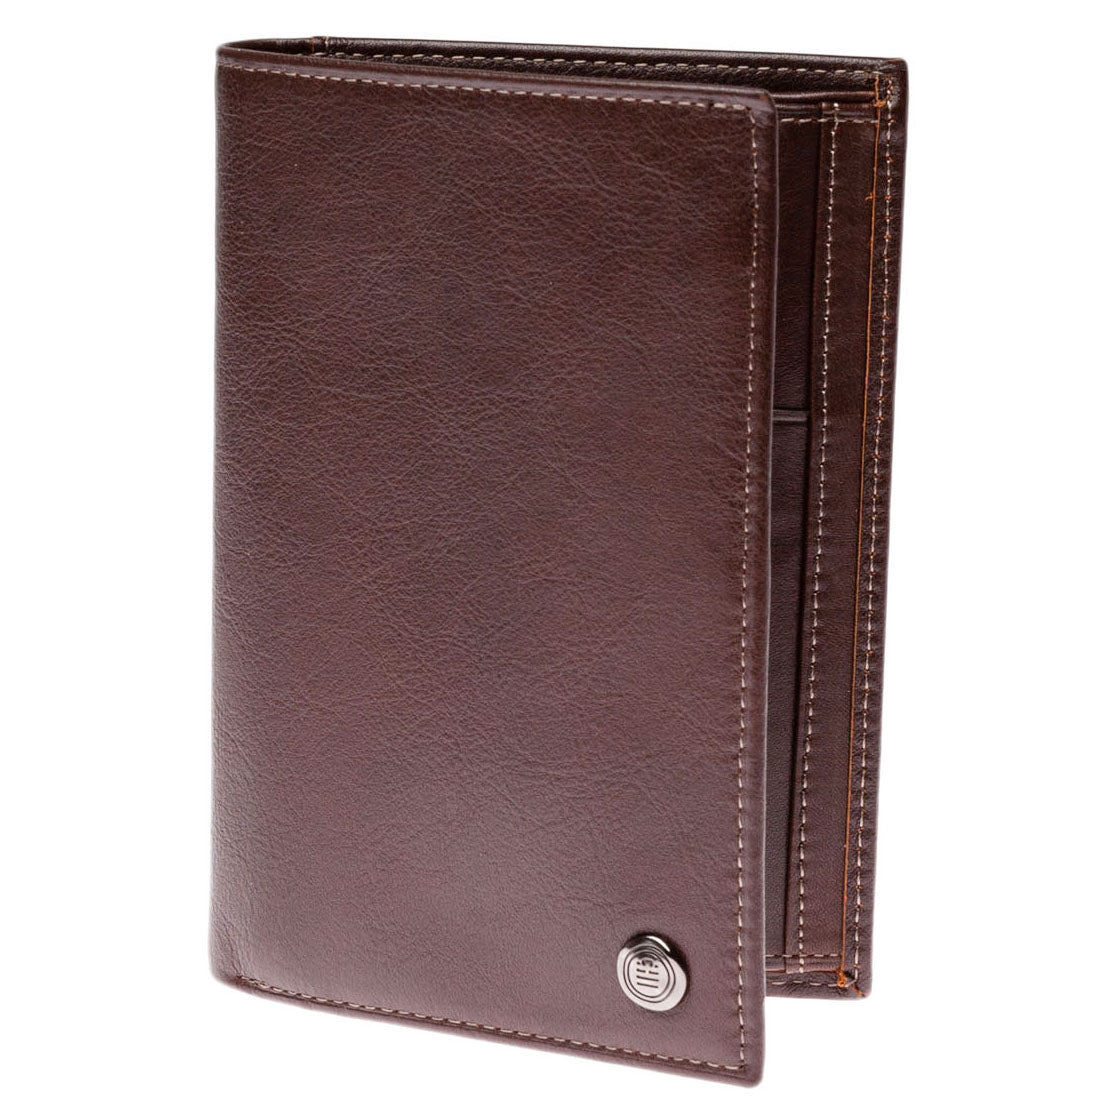 Campania Large Leather Wallet: Chocolate